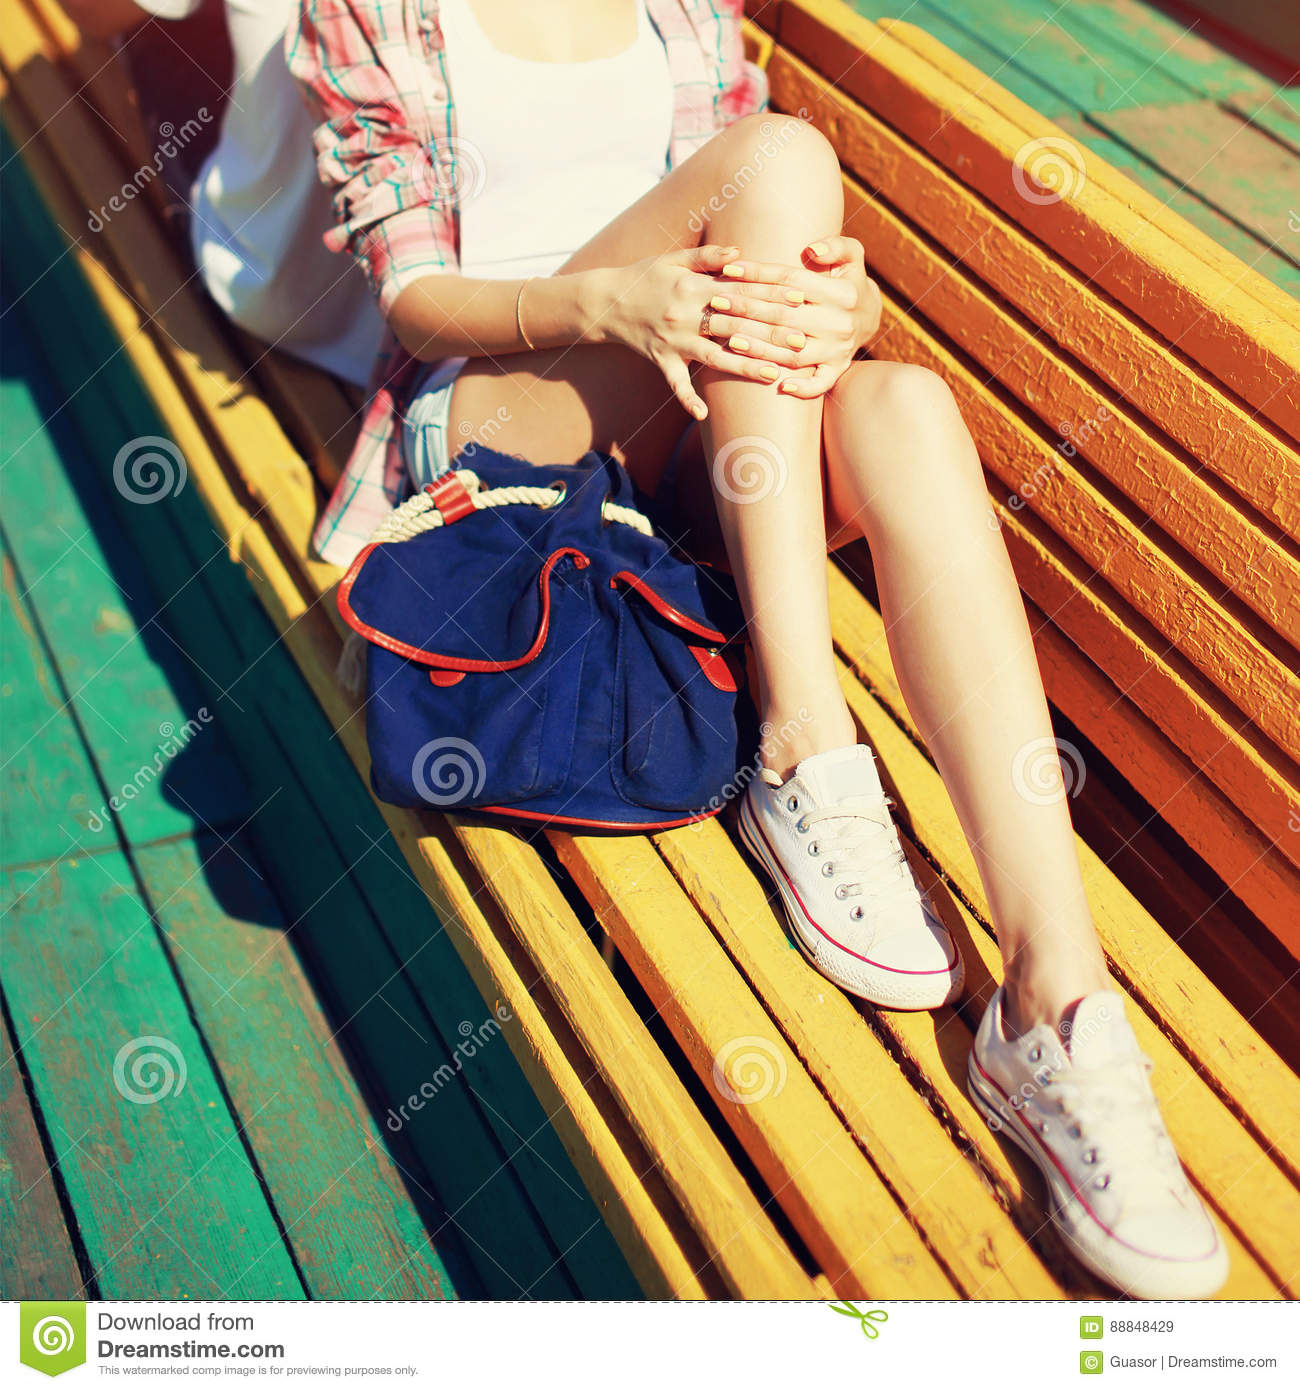 Young girl resting in city park on bench, beautiful slender female legs at summer